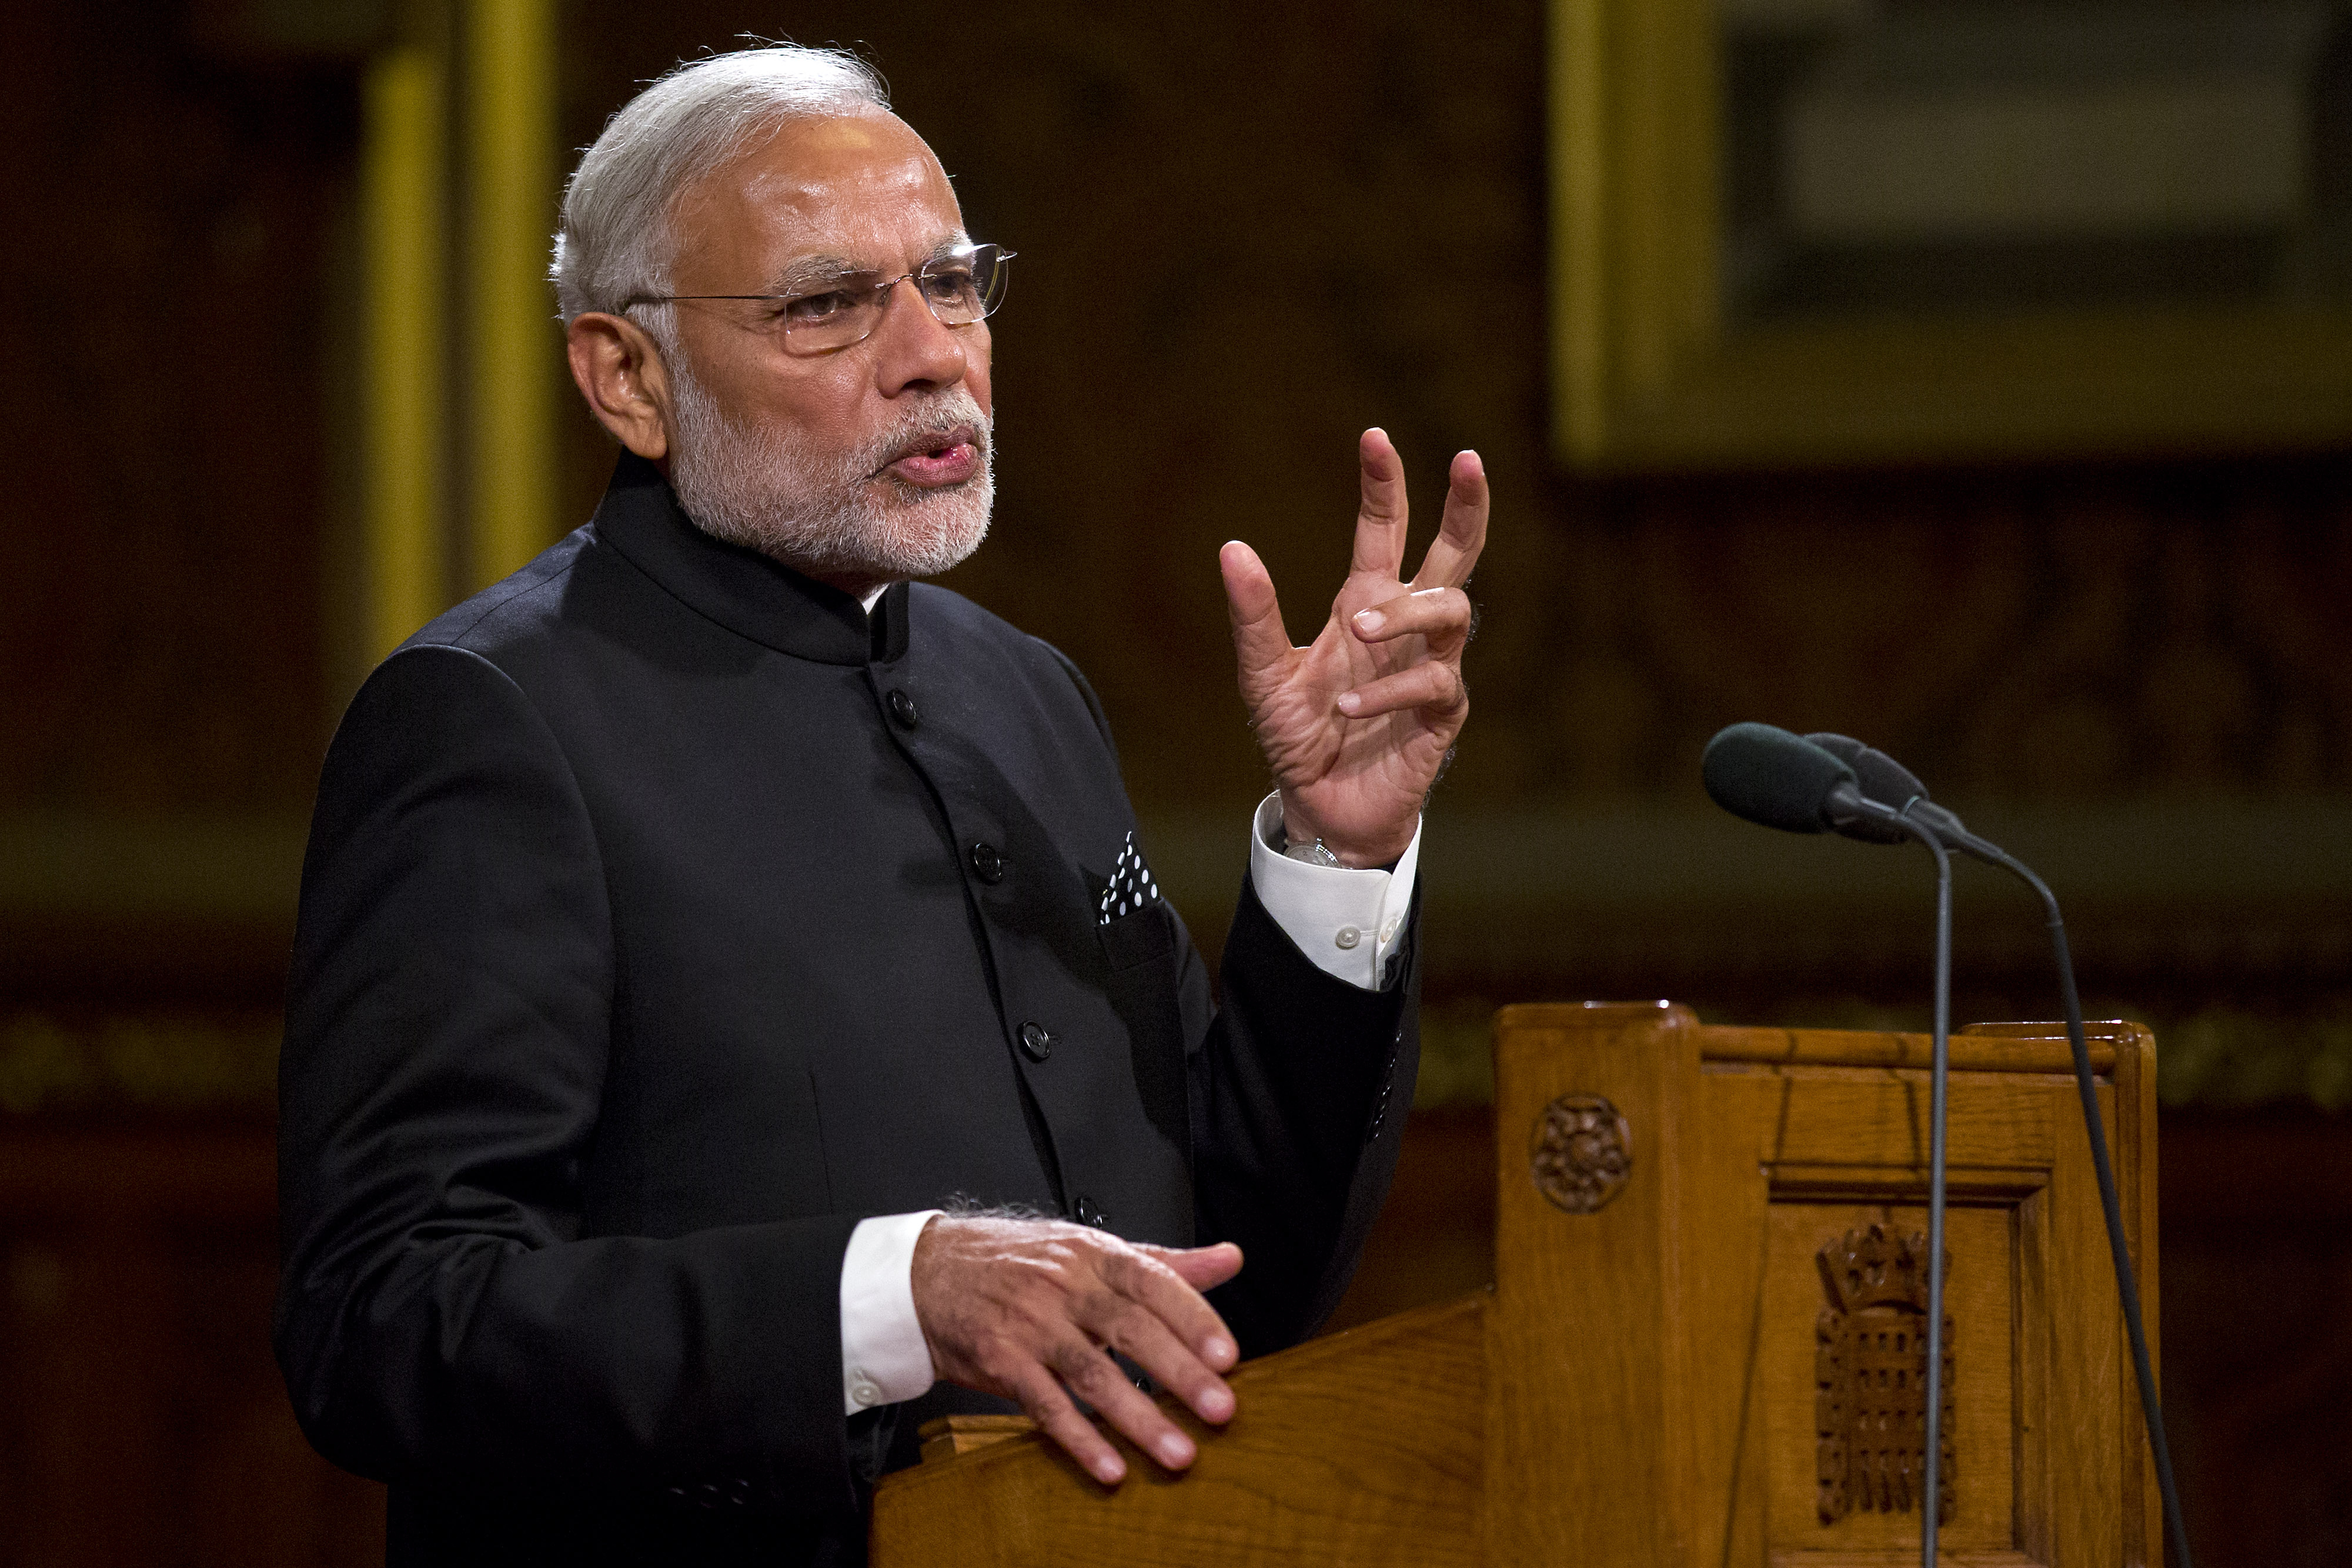 Indian Prime Minister Narendra Modi delivers a speech in the Royal Gallery in the Houses of Parliament during an official three day visit on November 12, 2015 in London, England.